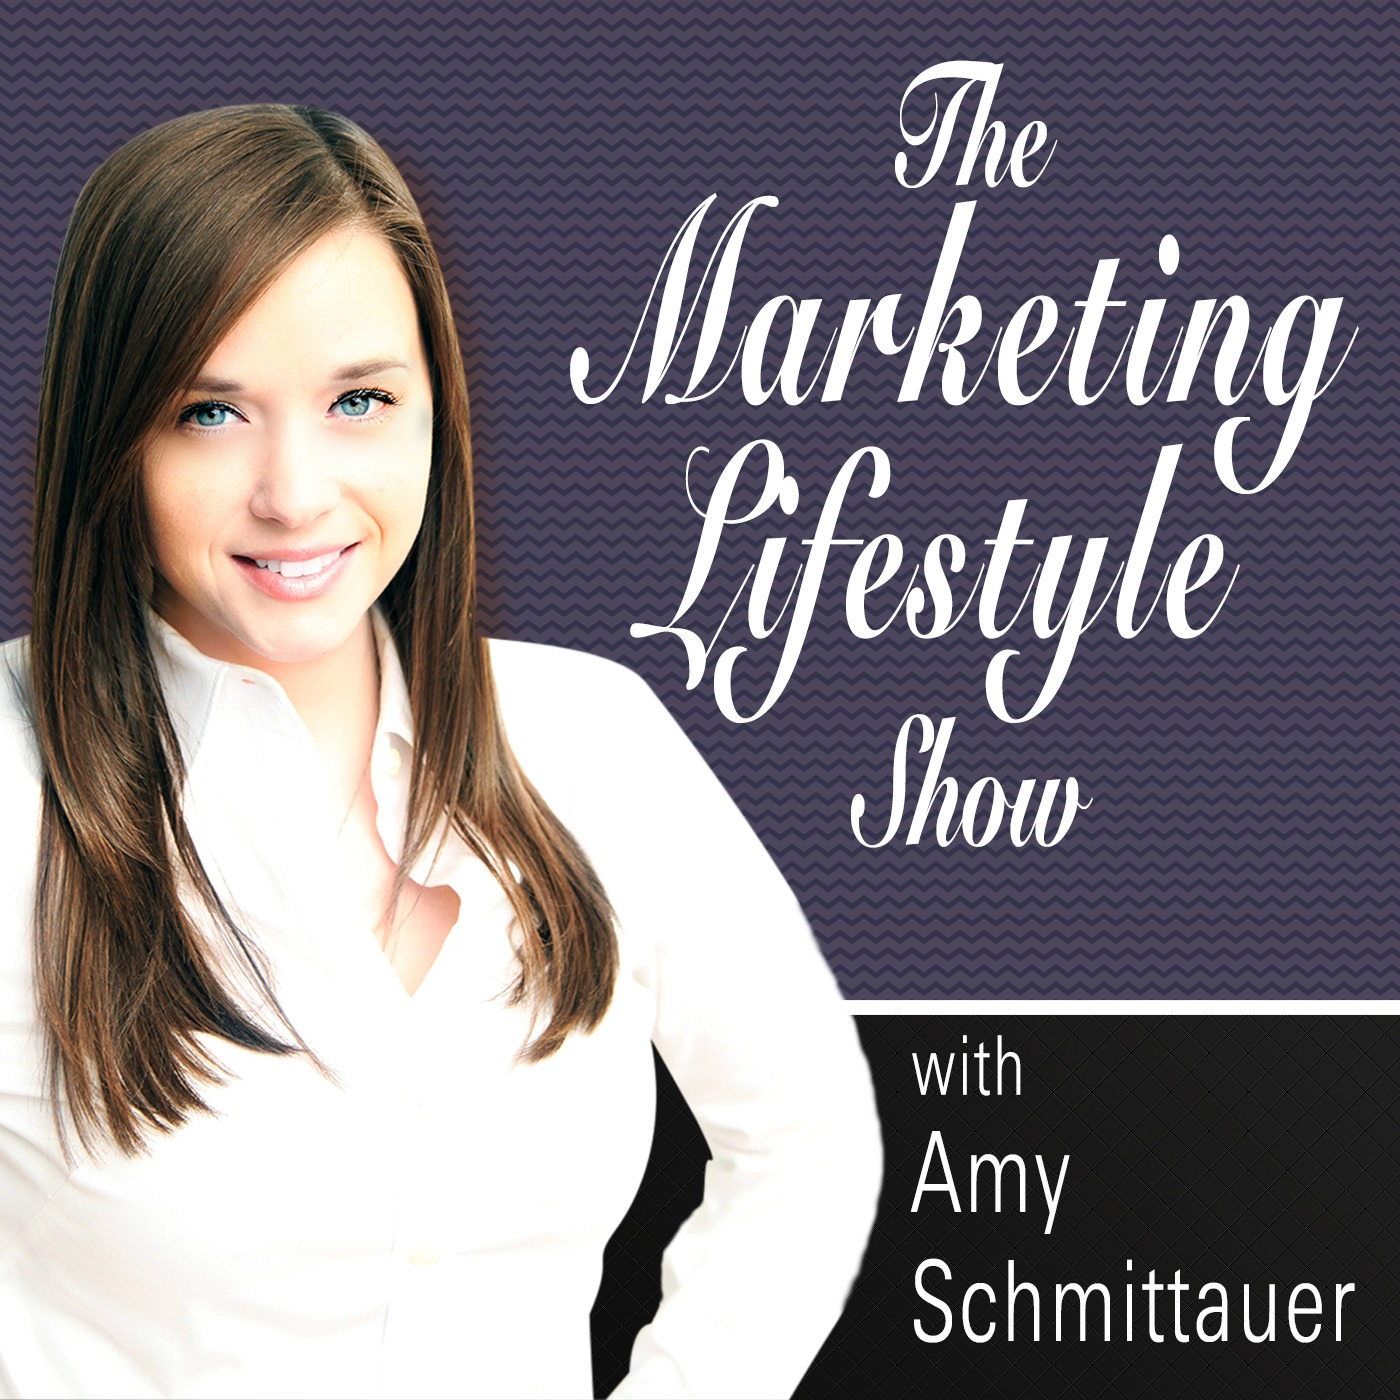 The Marketing Lifestyle Show - Amy Schmittauer